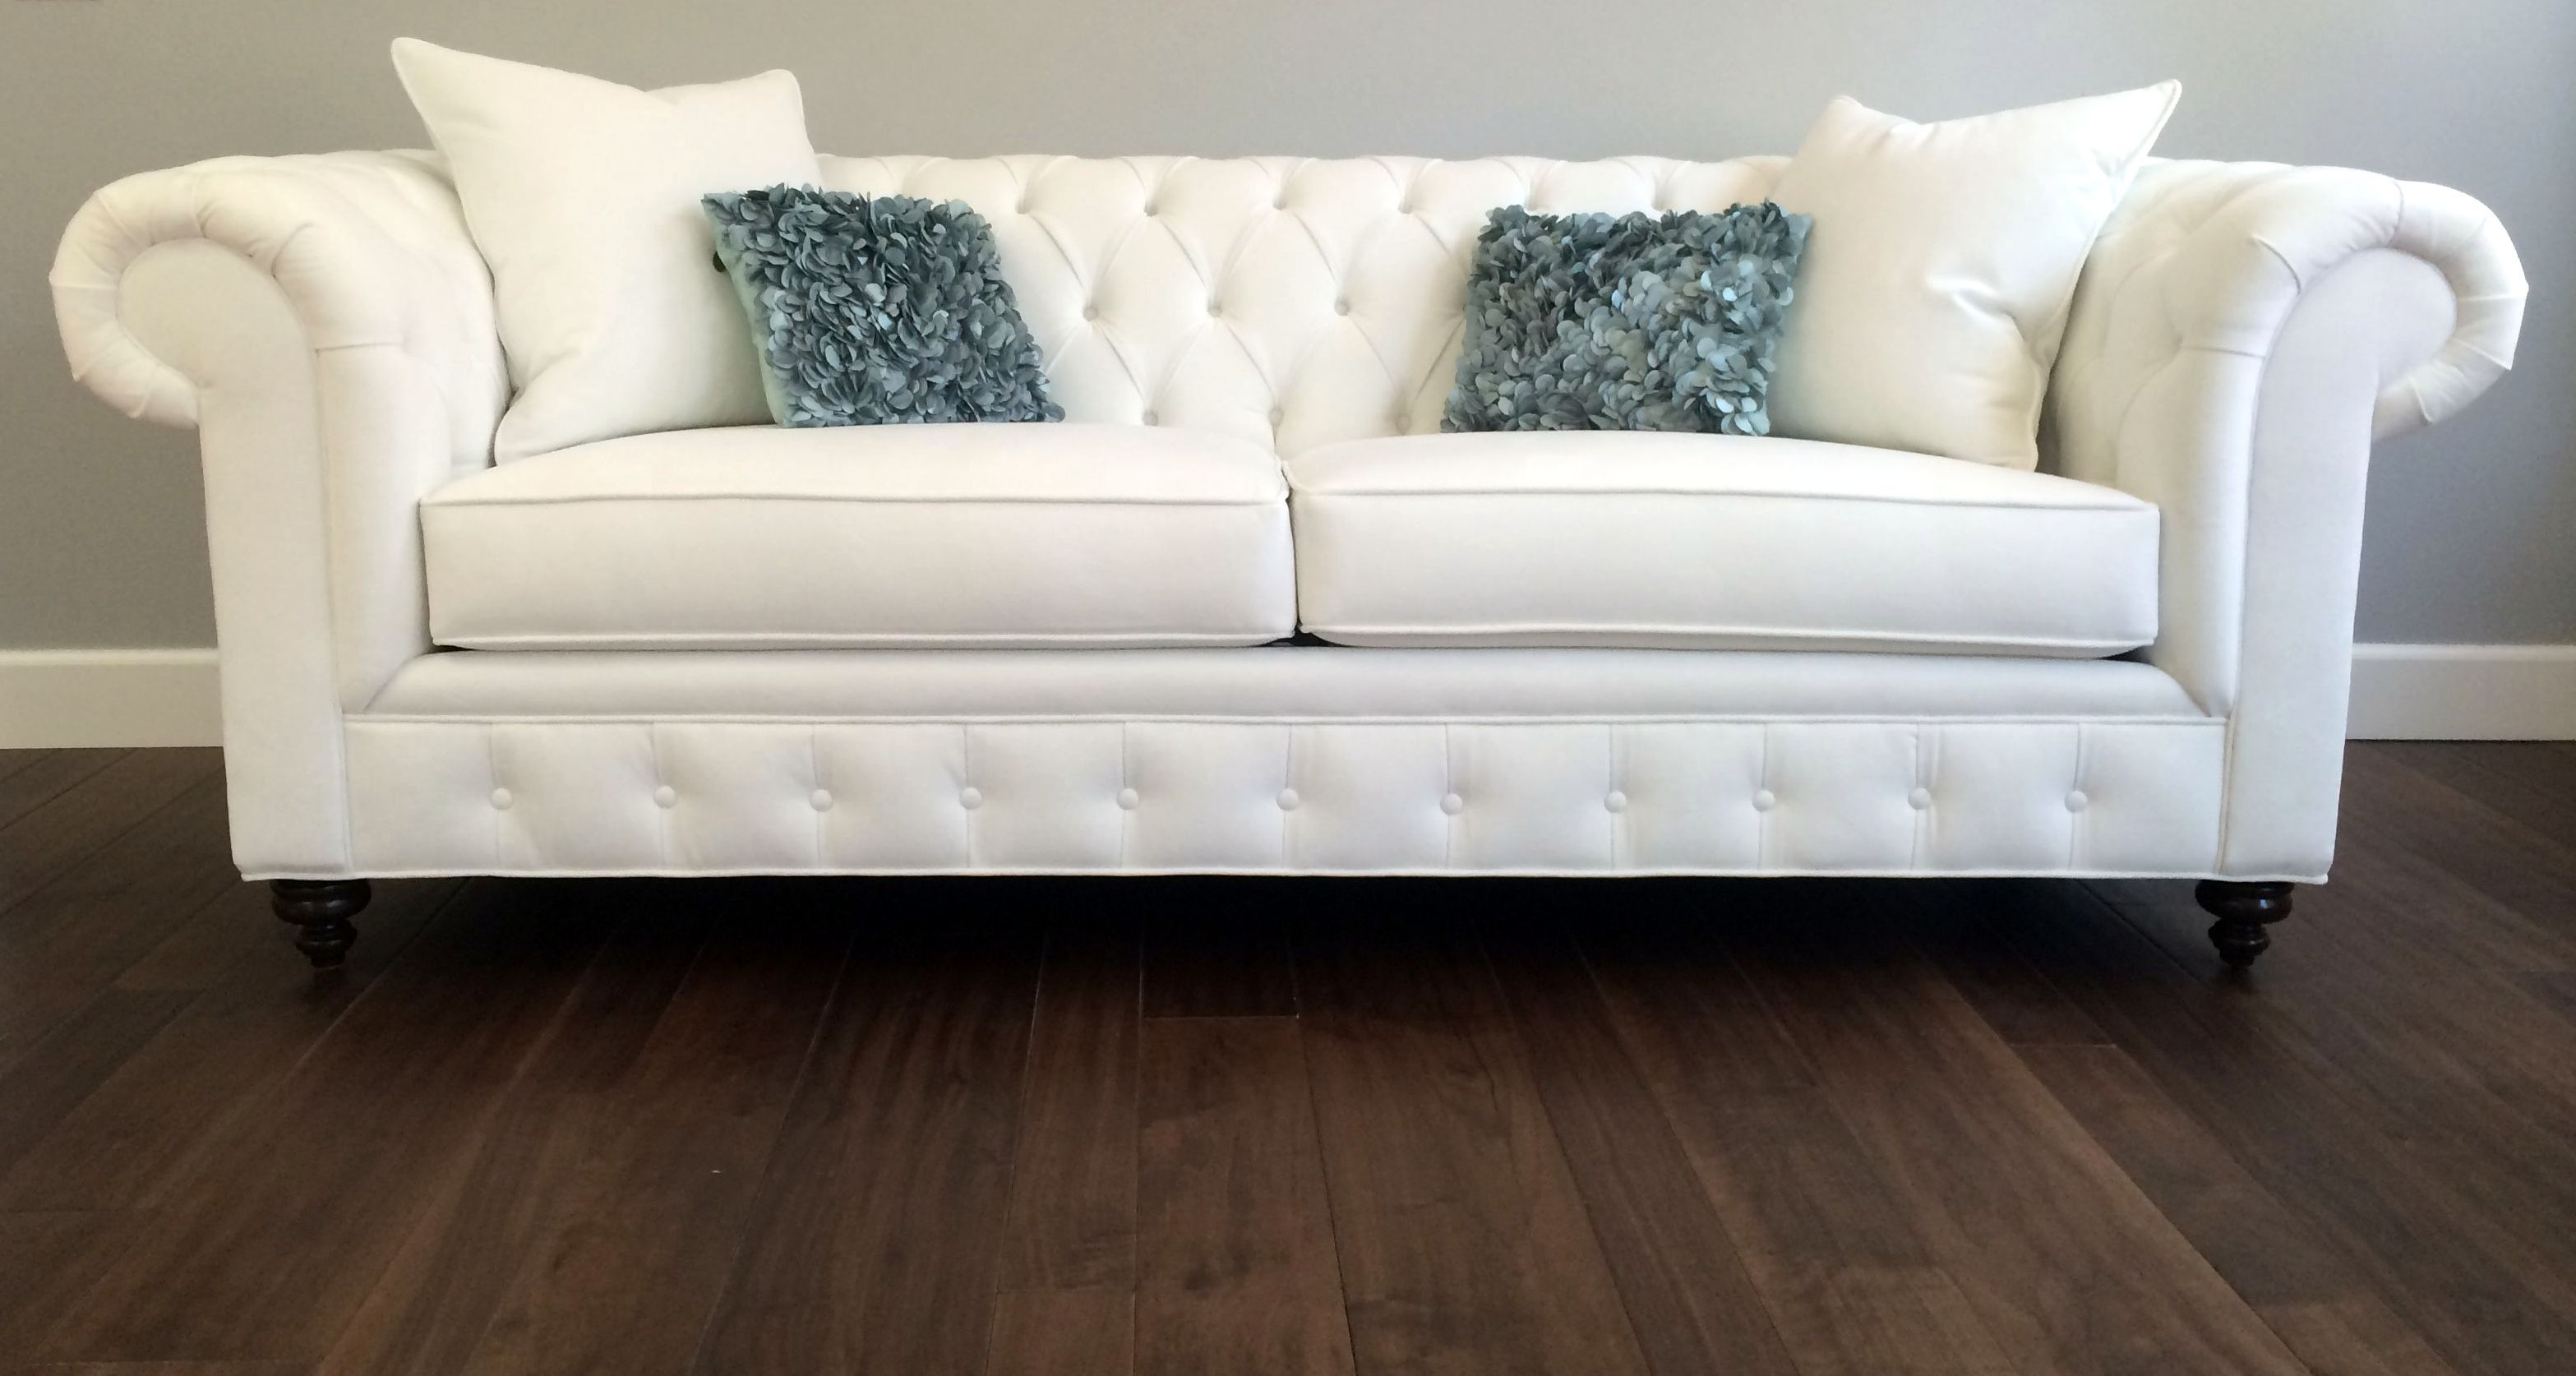 Delicieux Custom CHESTERFIELD Sofa Or Sectional. Leather Or Fabric. Ships Nationwide.